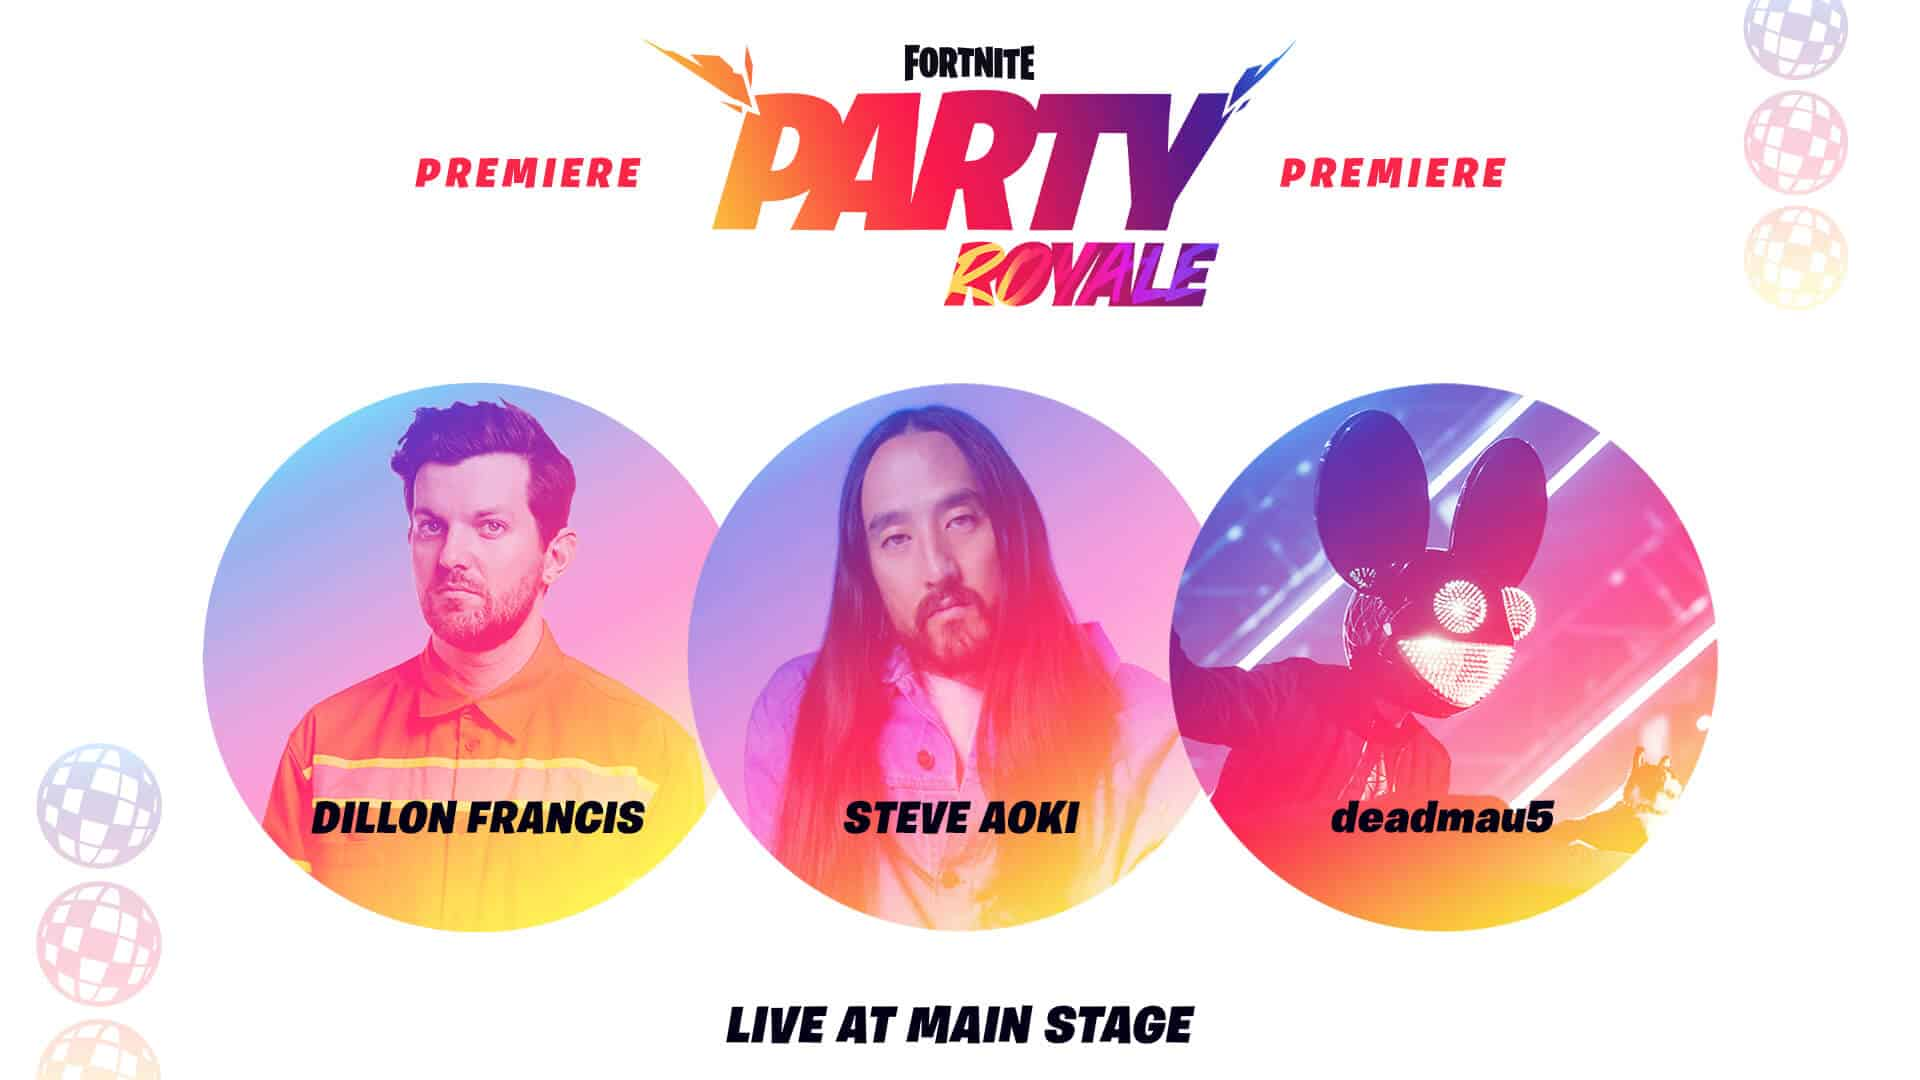 Fortnite Party Royale to Feature Dillon Francis, Steve Aoki, and deadmau5 Concerts